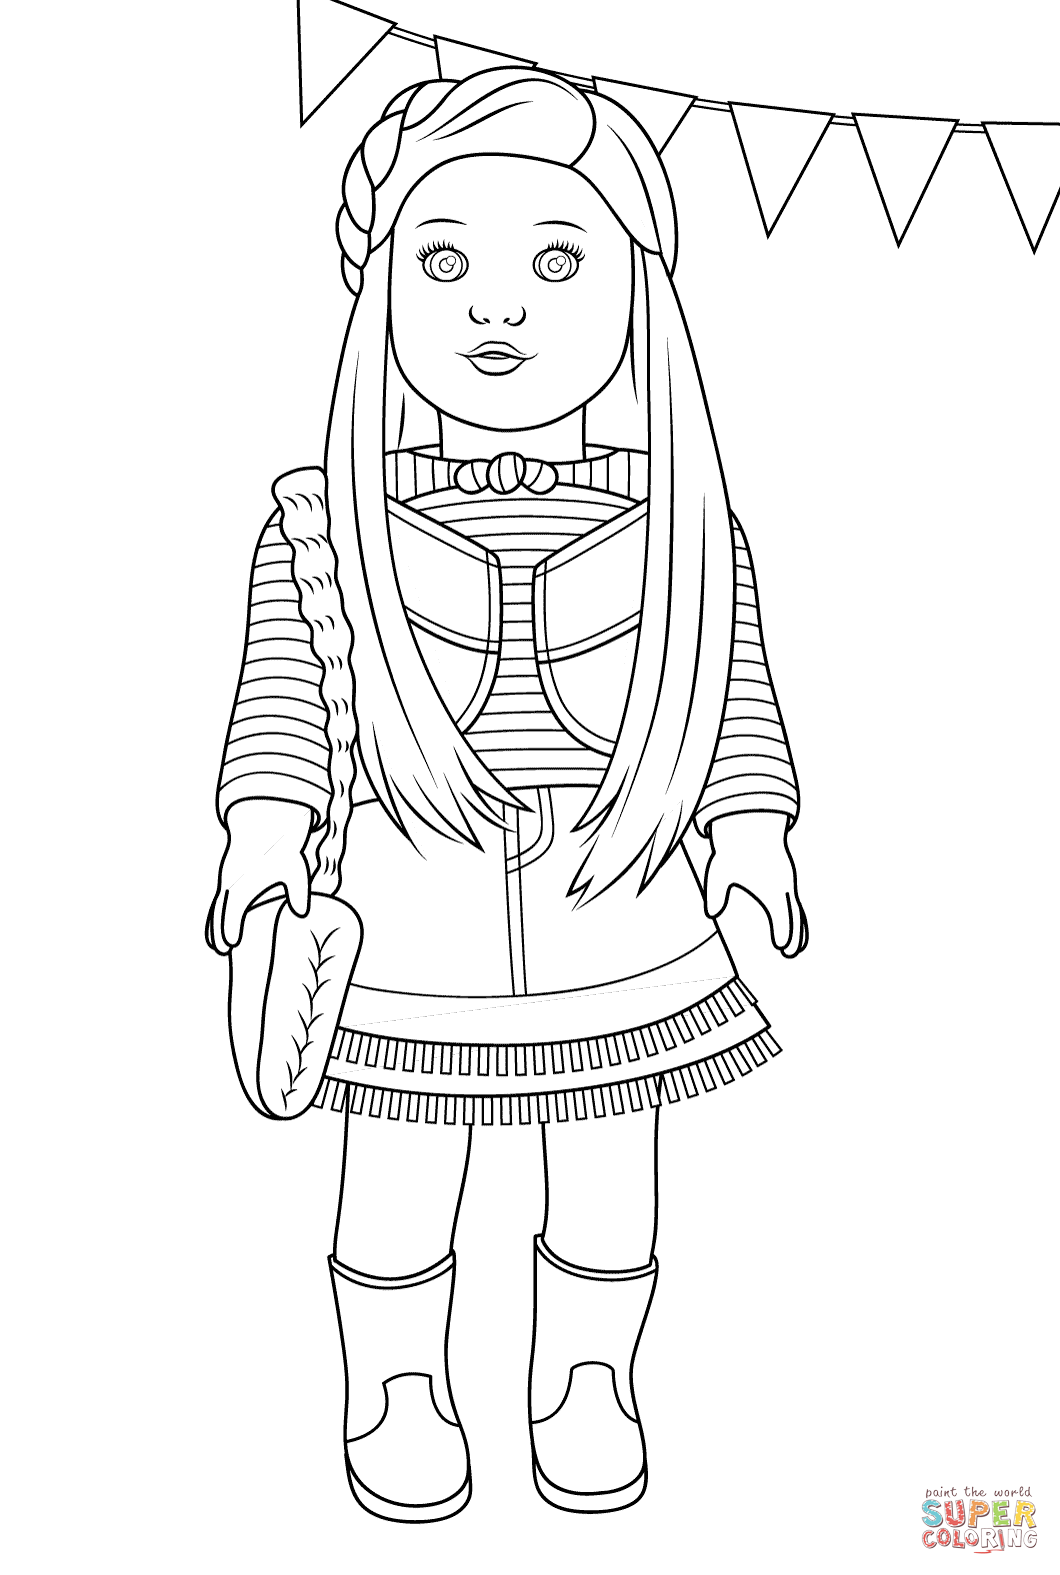 girl pictures to color and print american girl doll coloring pages to download and print to color print girl pictures and